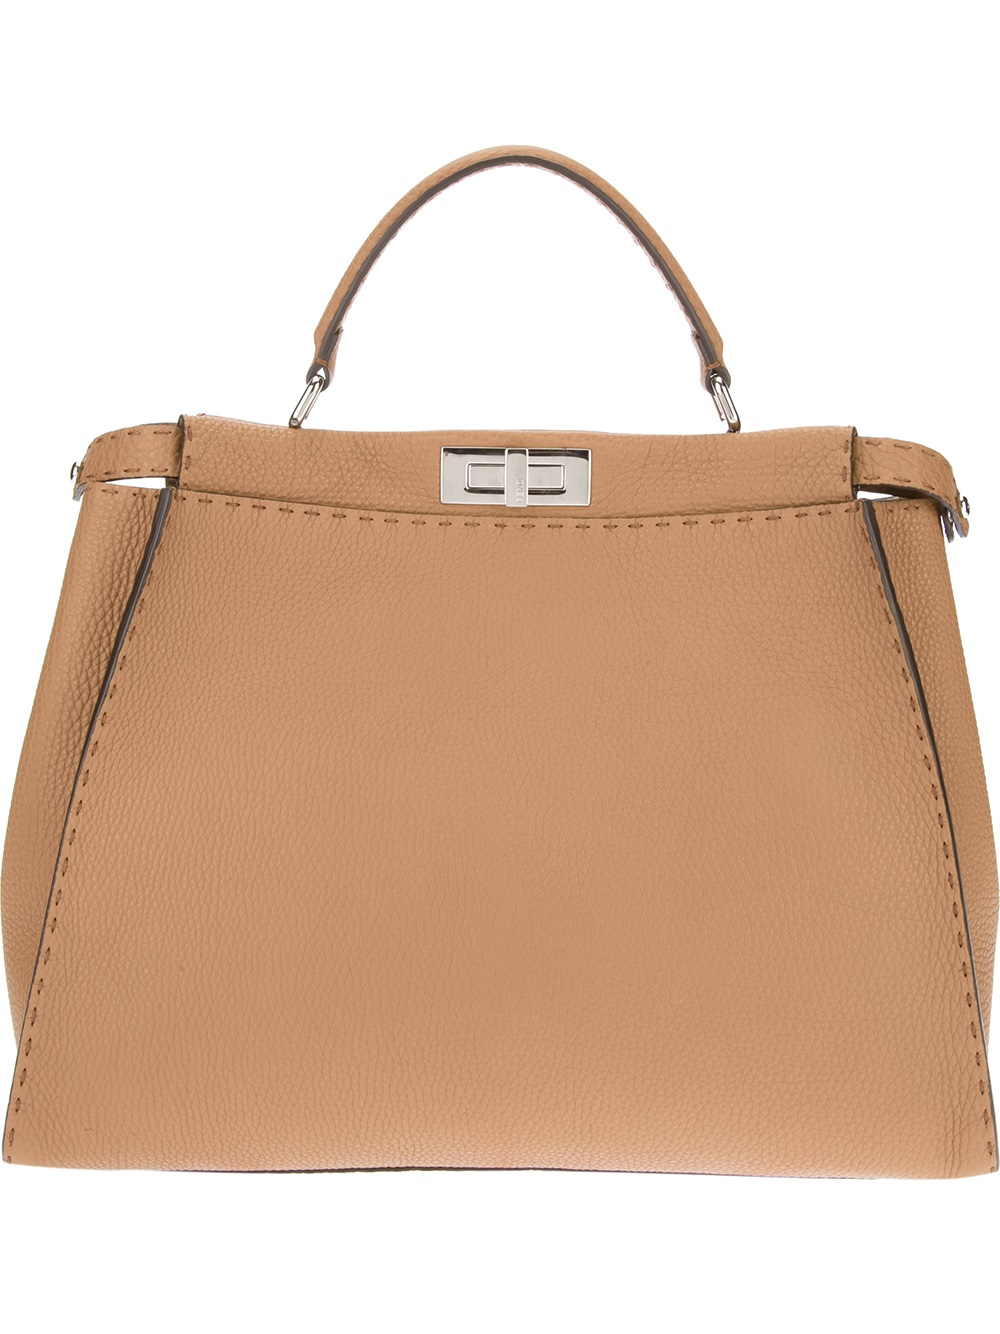 e65e5c8843 Lyst - Fendi Selleria Peekaboo Tote Bag in Brown